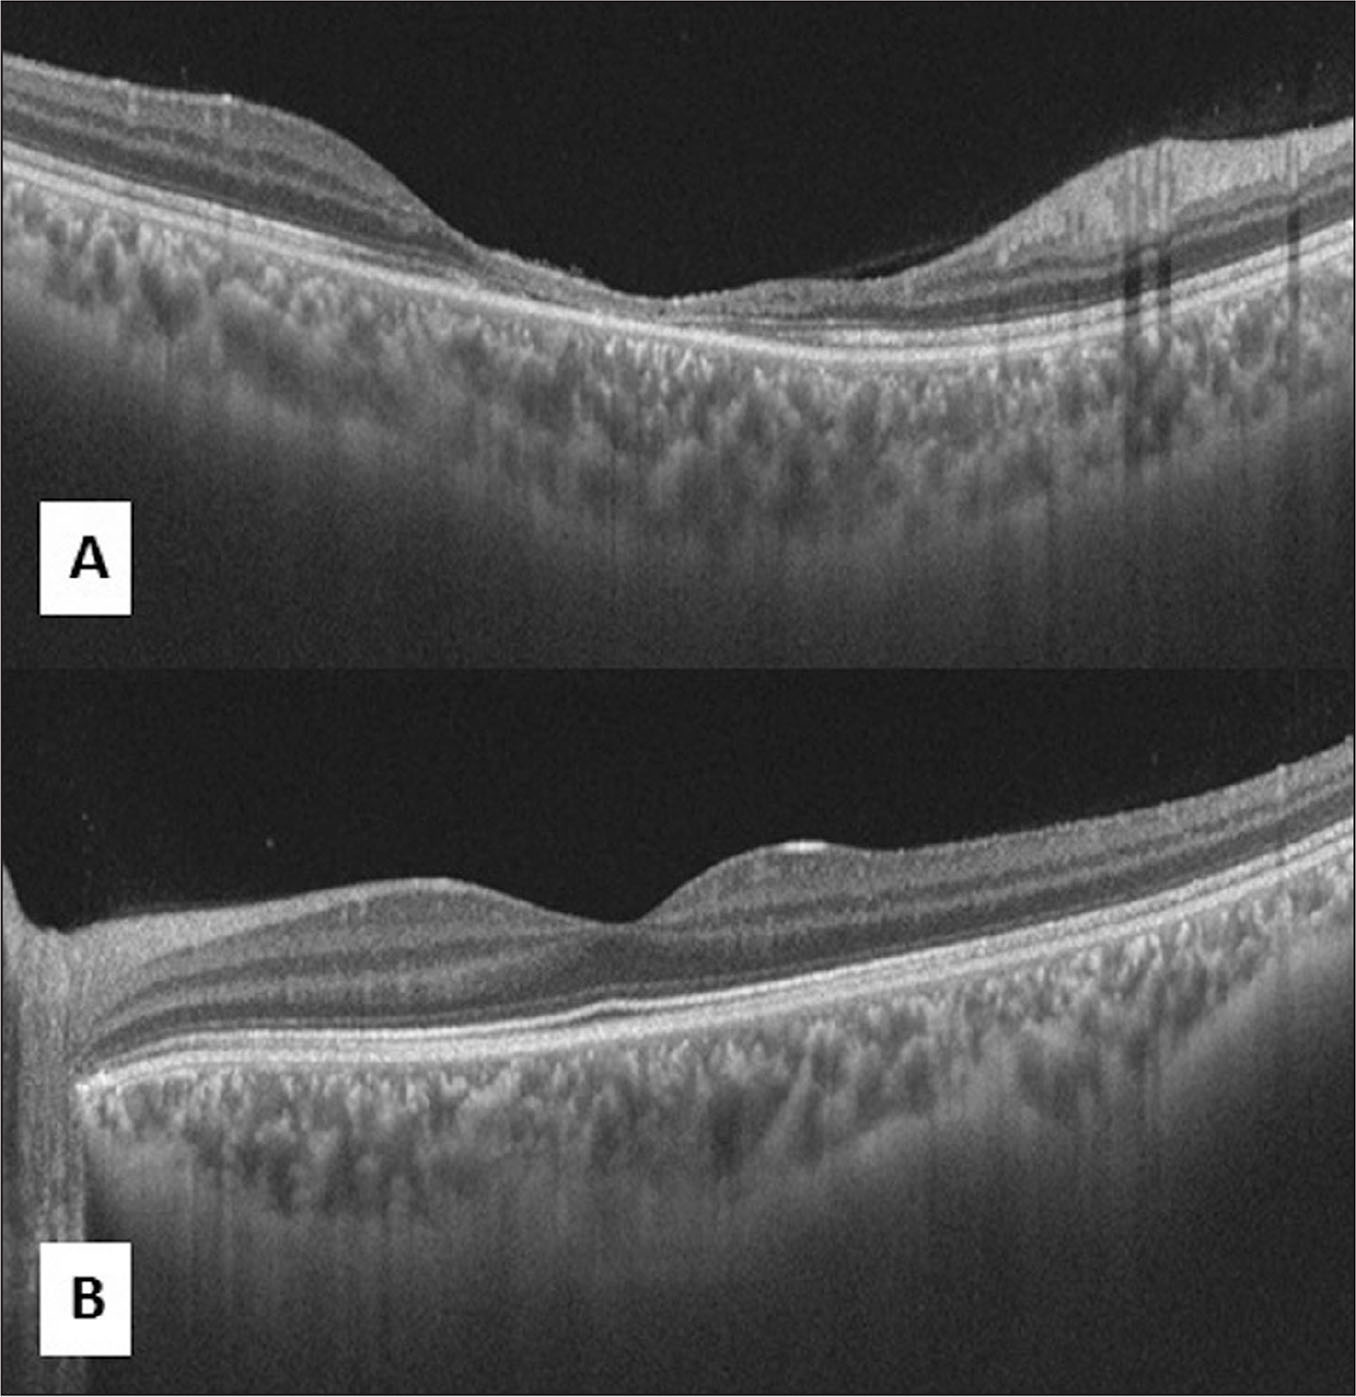 (A) Swept source optical coherence tomography (SS-OCT) image of the right eye showing foveal atrophy, disrupted ellipsoid zone, and outer retinal layers. The choroidal vasculature is preserved. (B) SS-OCT image of the left eye showing normal retinal and choroidal vasculature.